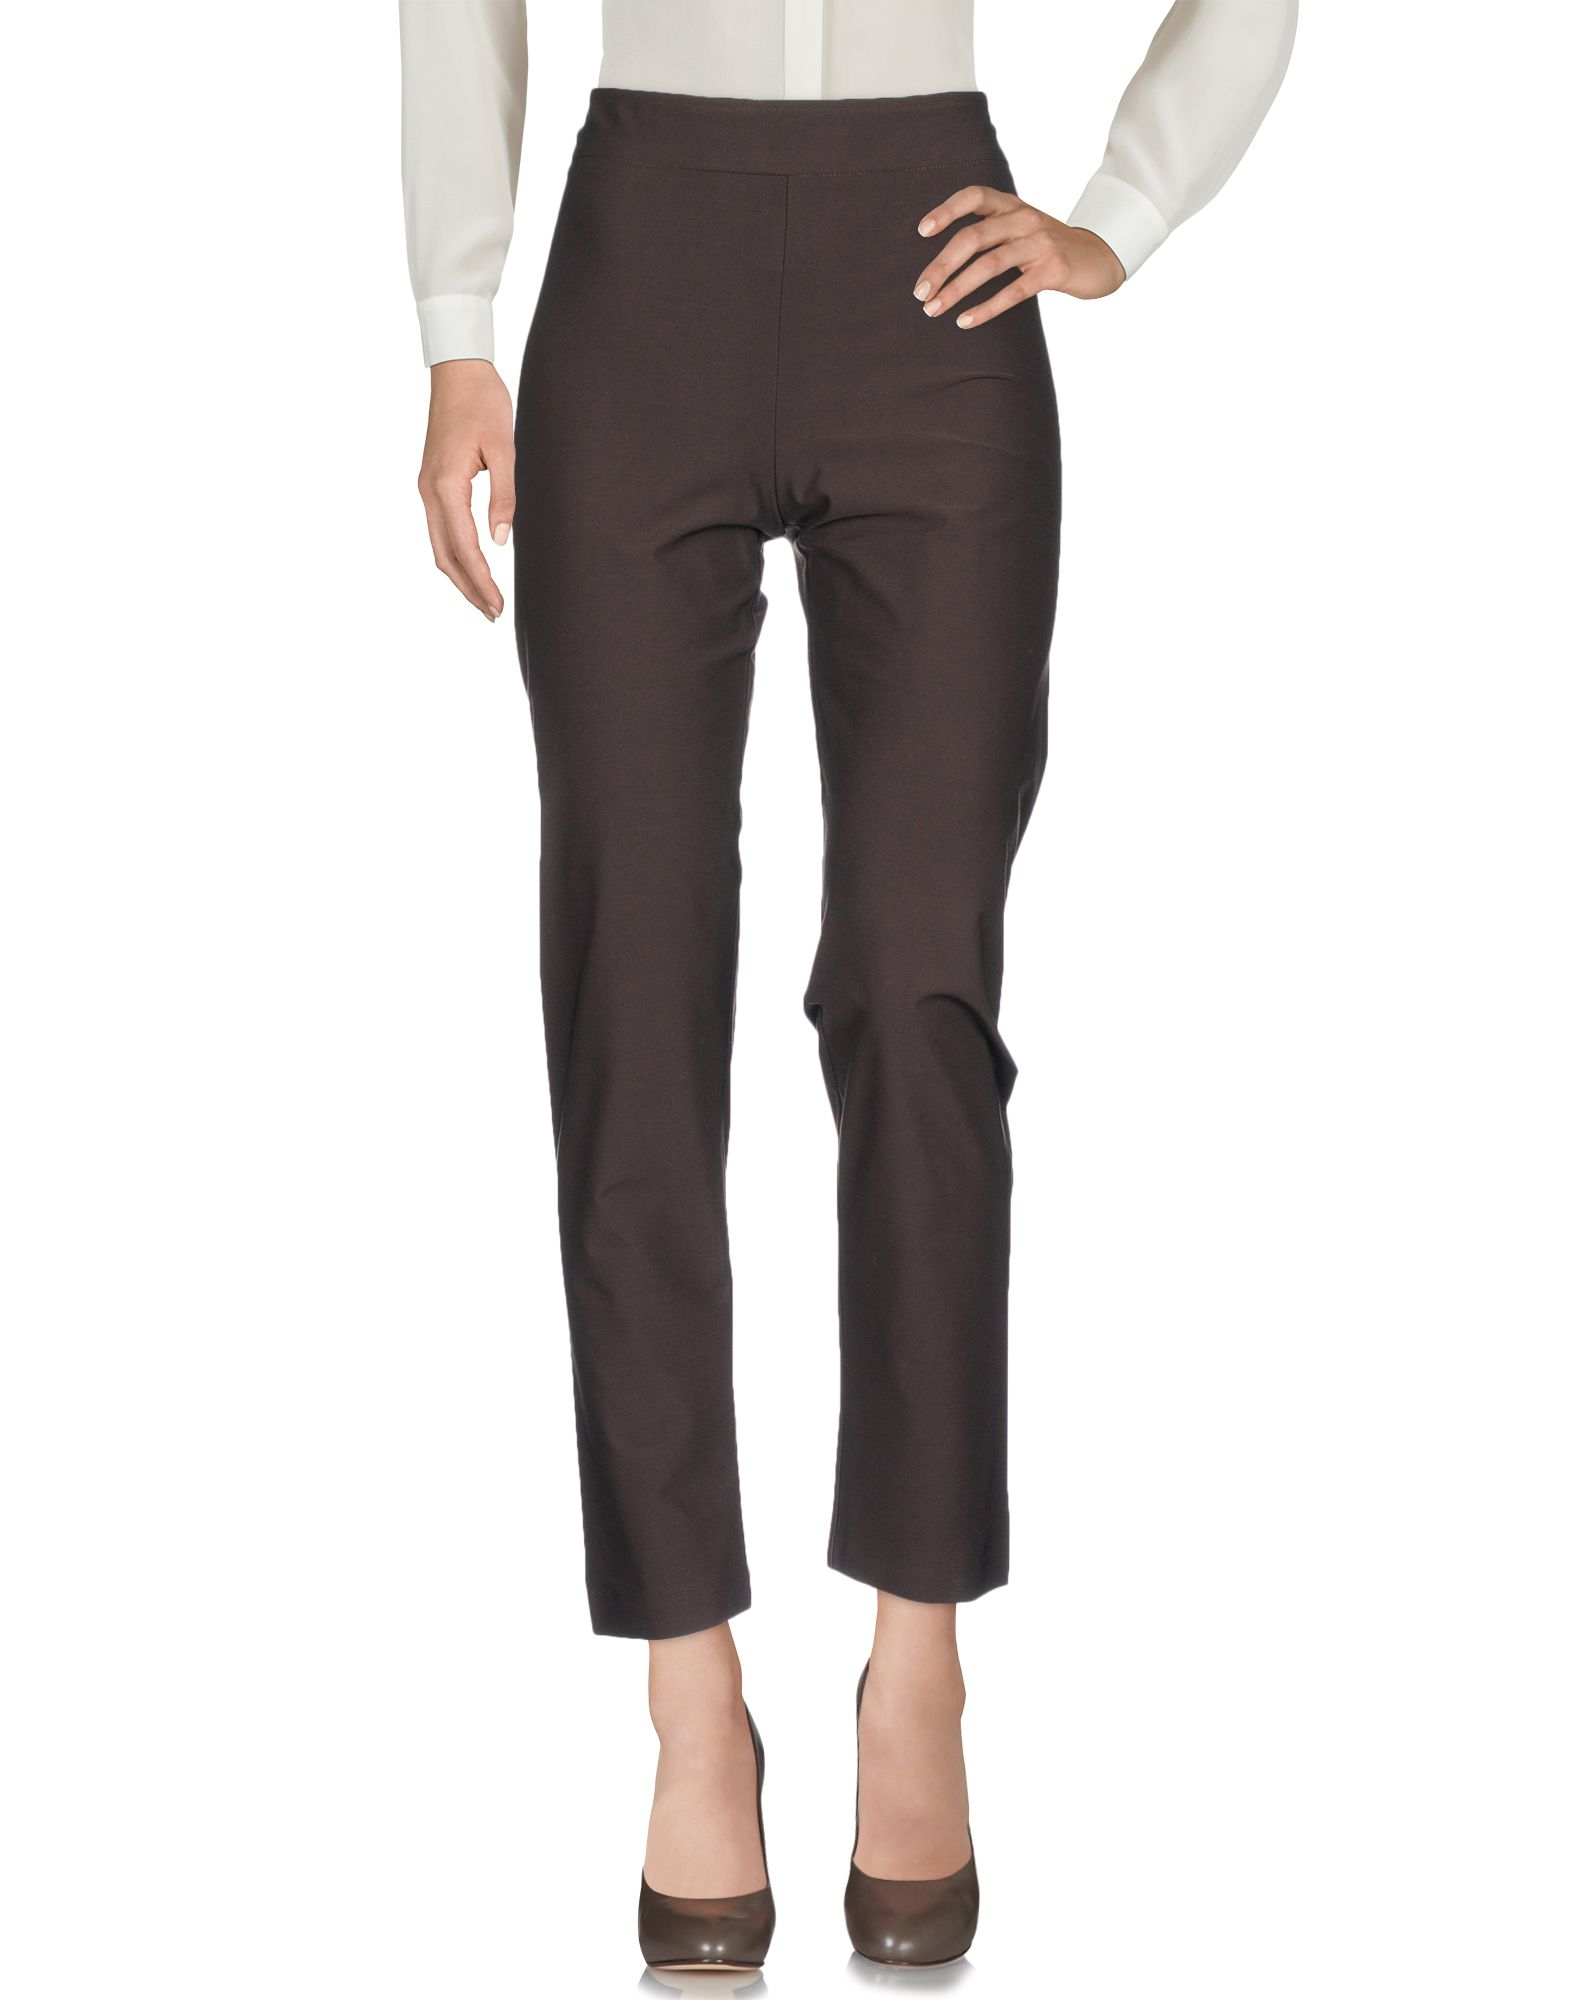 AVENUE MONTAIGNE Cropped Pants & Culottes in Dark Brown